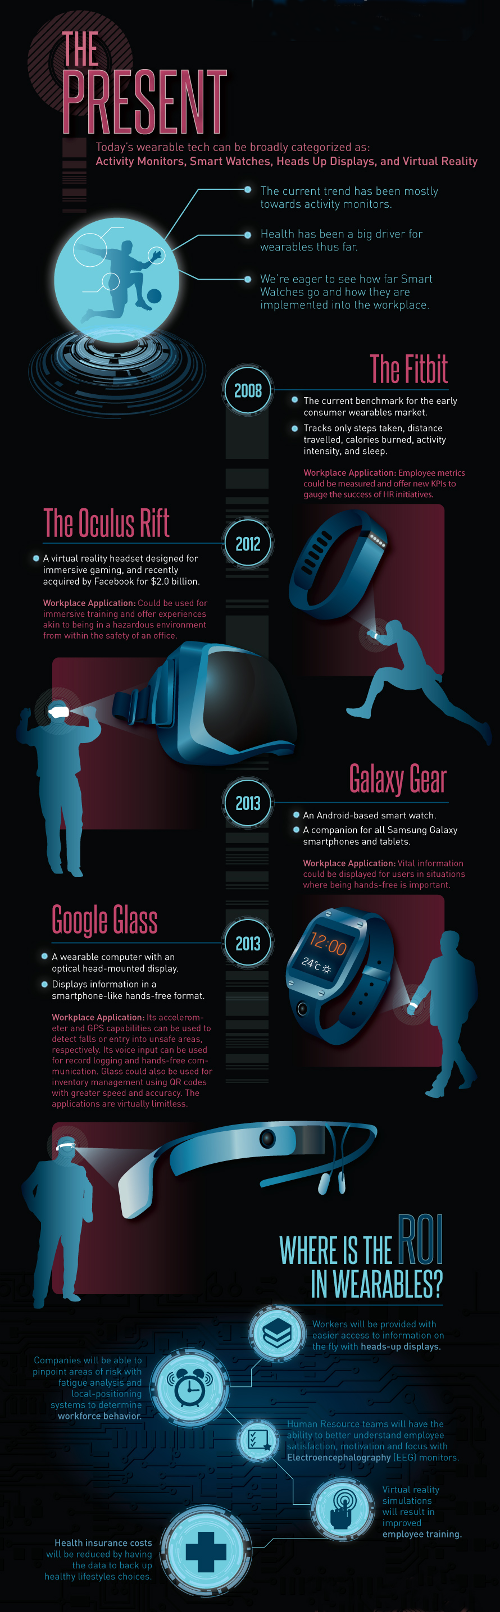 wearable.technology.2.present